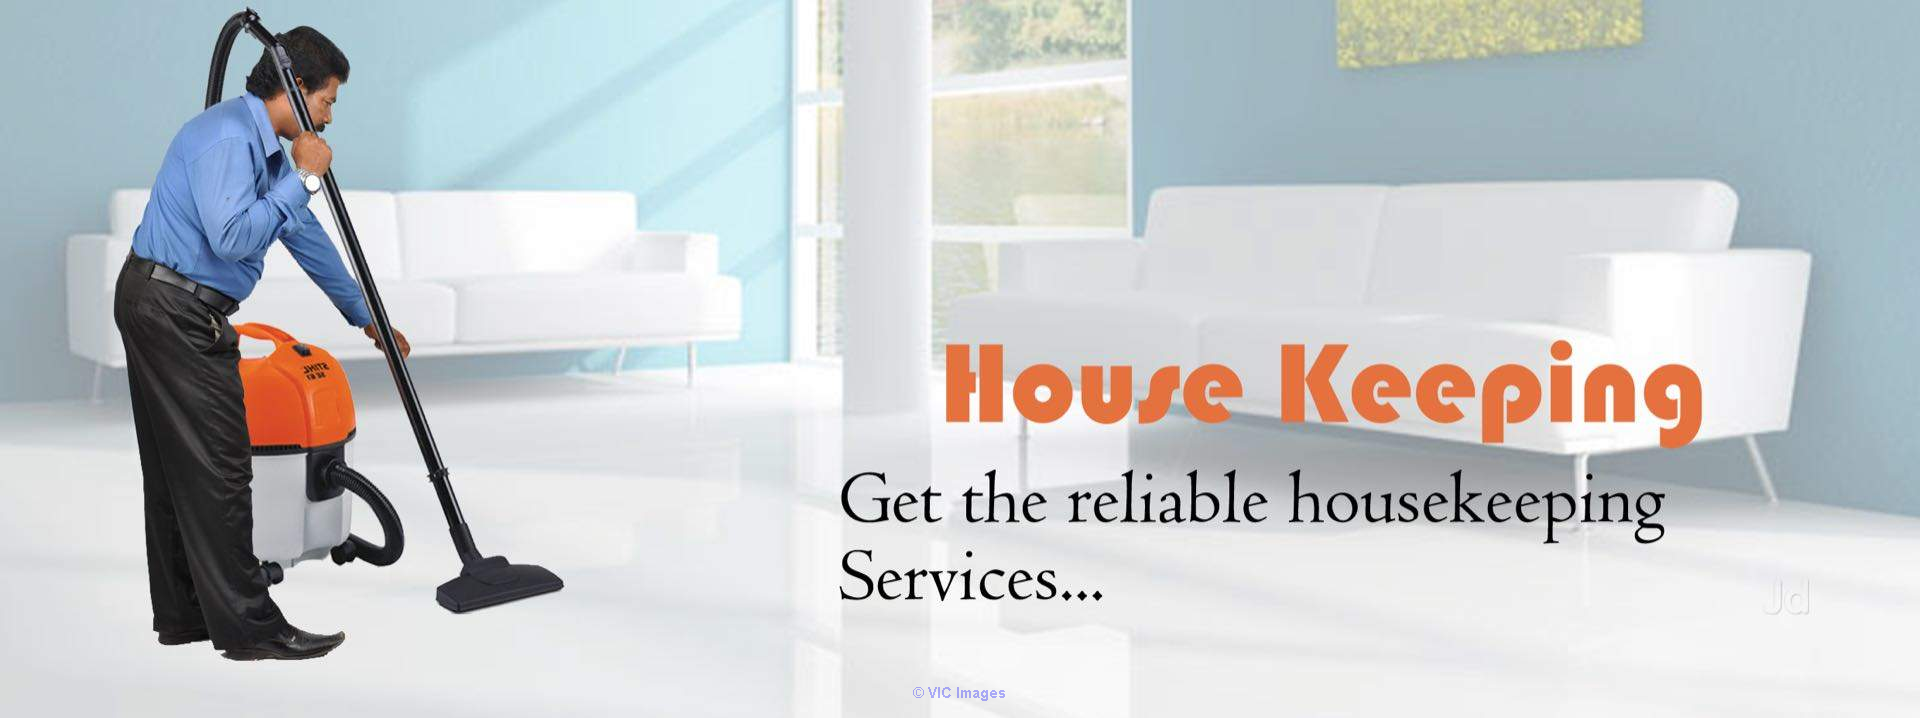 Best Housekeeping Services Montreal calgary